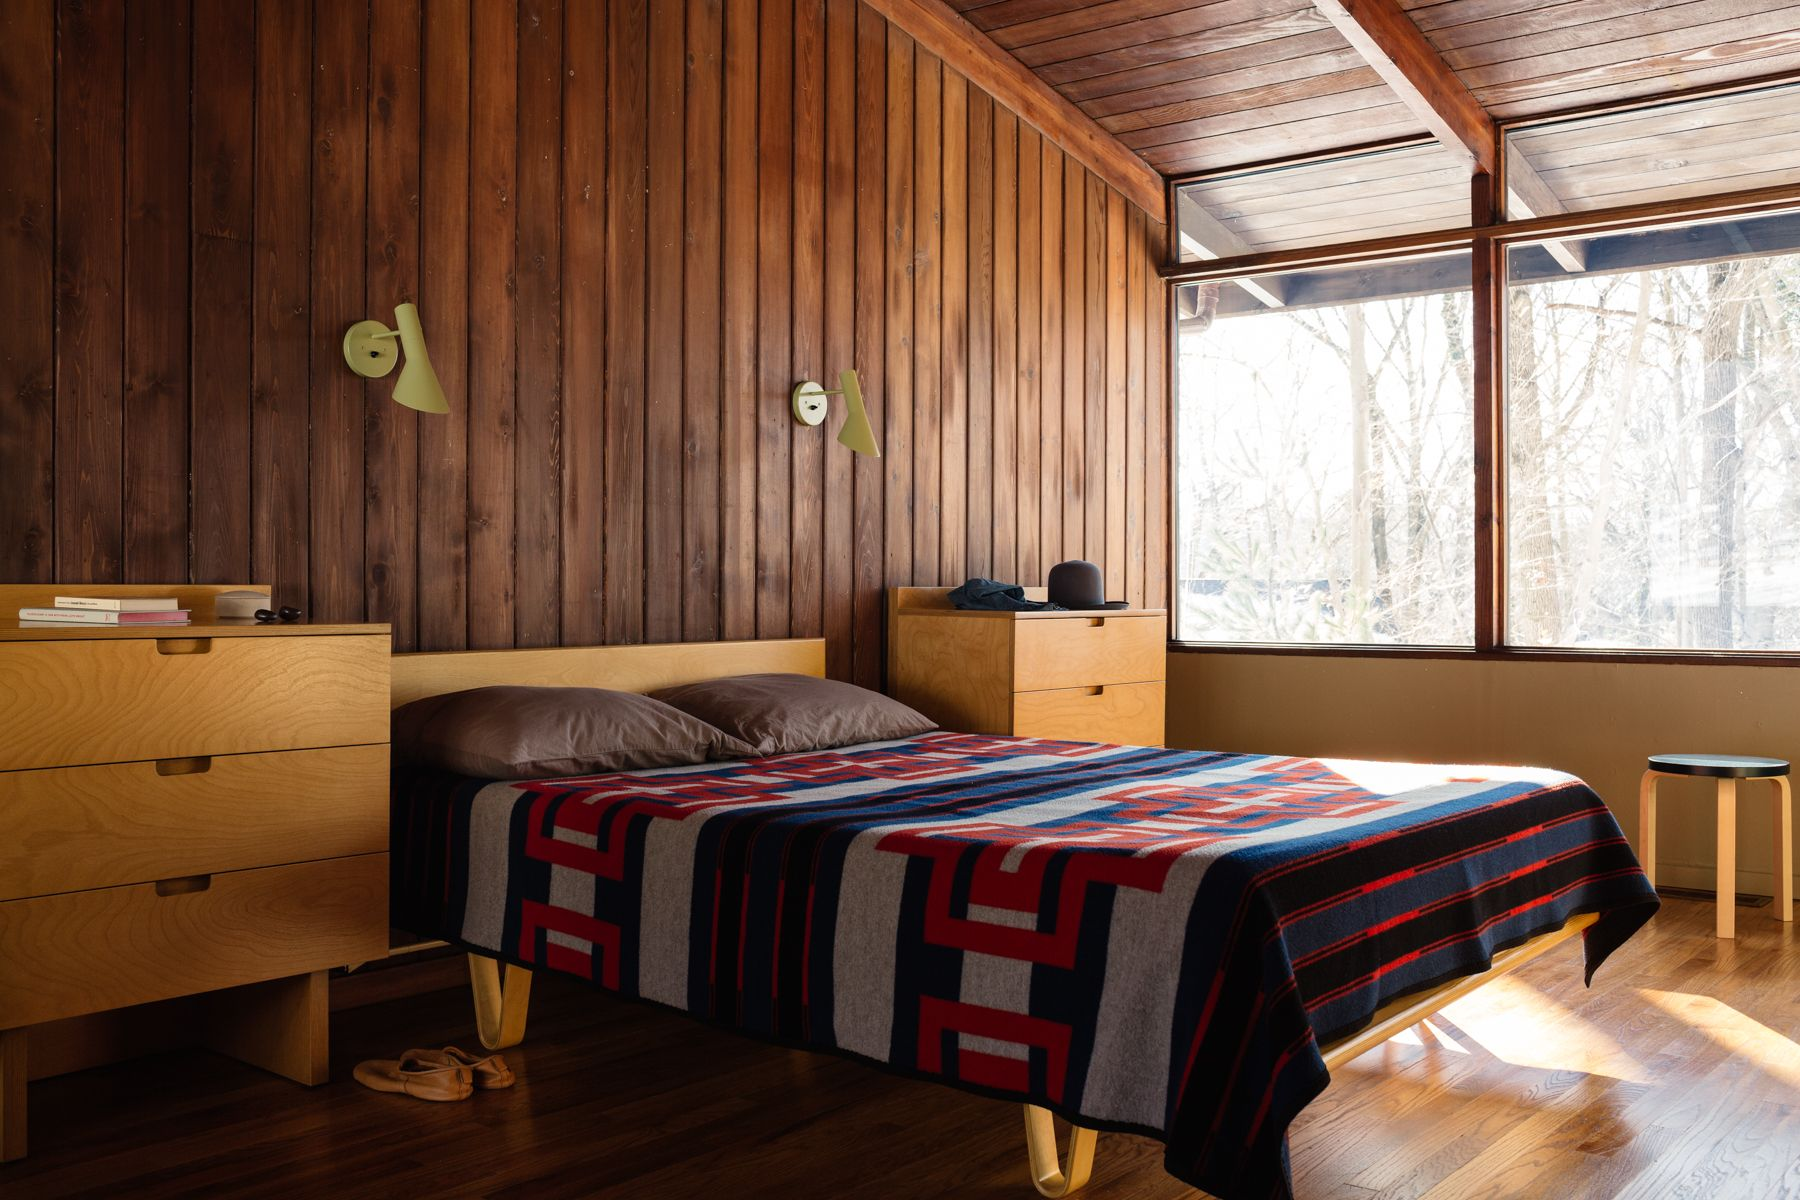 Steal This Look An Authentic Midcentury Modern Bedroom